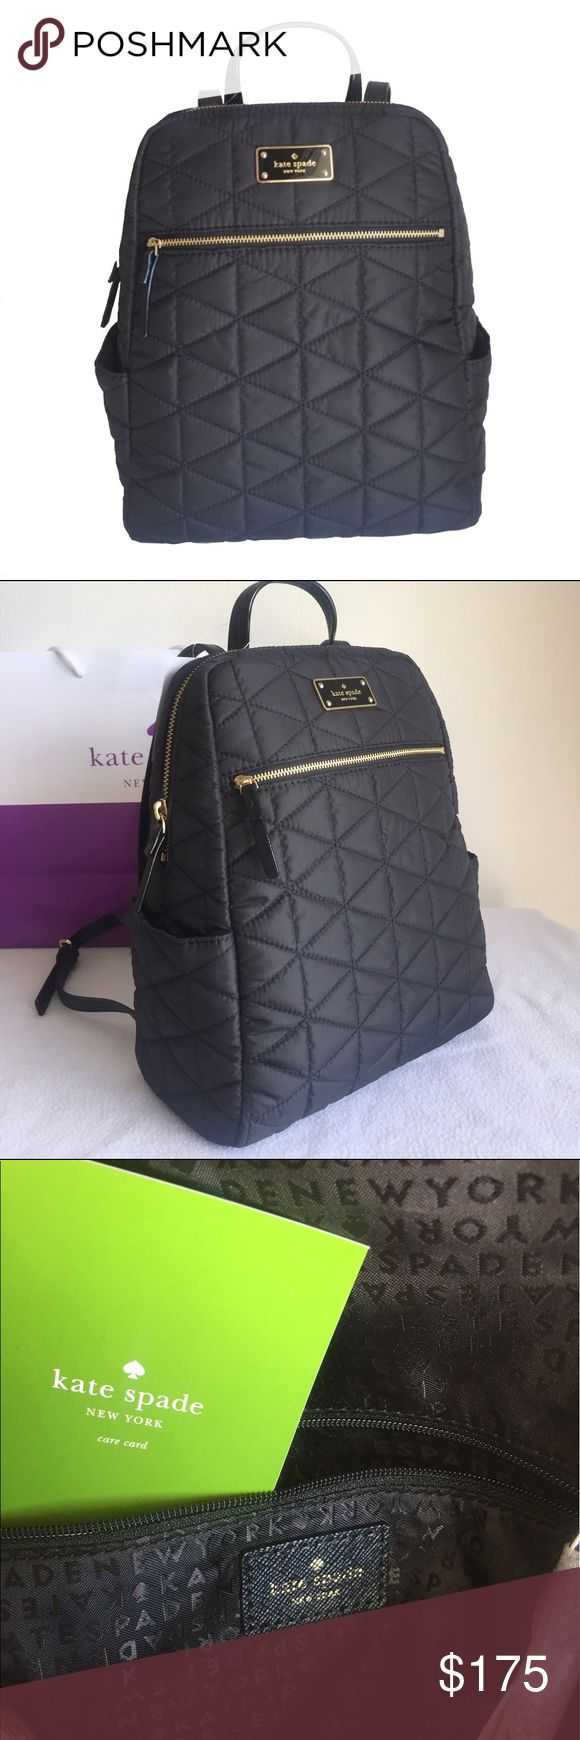 "KATE SPADE ♠️""Hilo/Blake Avenue"" Quilted Backpack! KATE SPADE ♠️""Hilo/Blake Avenue"" Quilted Backpack! Measurements are approximately 9"" x 12"" x 4"". 14K gold plated hardware. Adjustable shoulder strap. One large exterior zipper pocket and two side slip pockets. Brand-new with tags! kate spade Bags Backpacks"